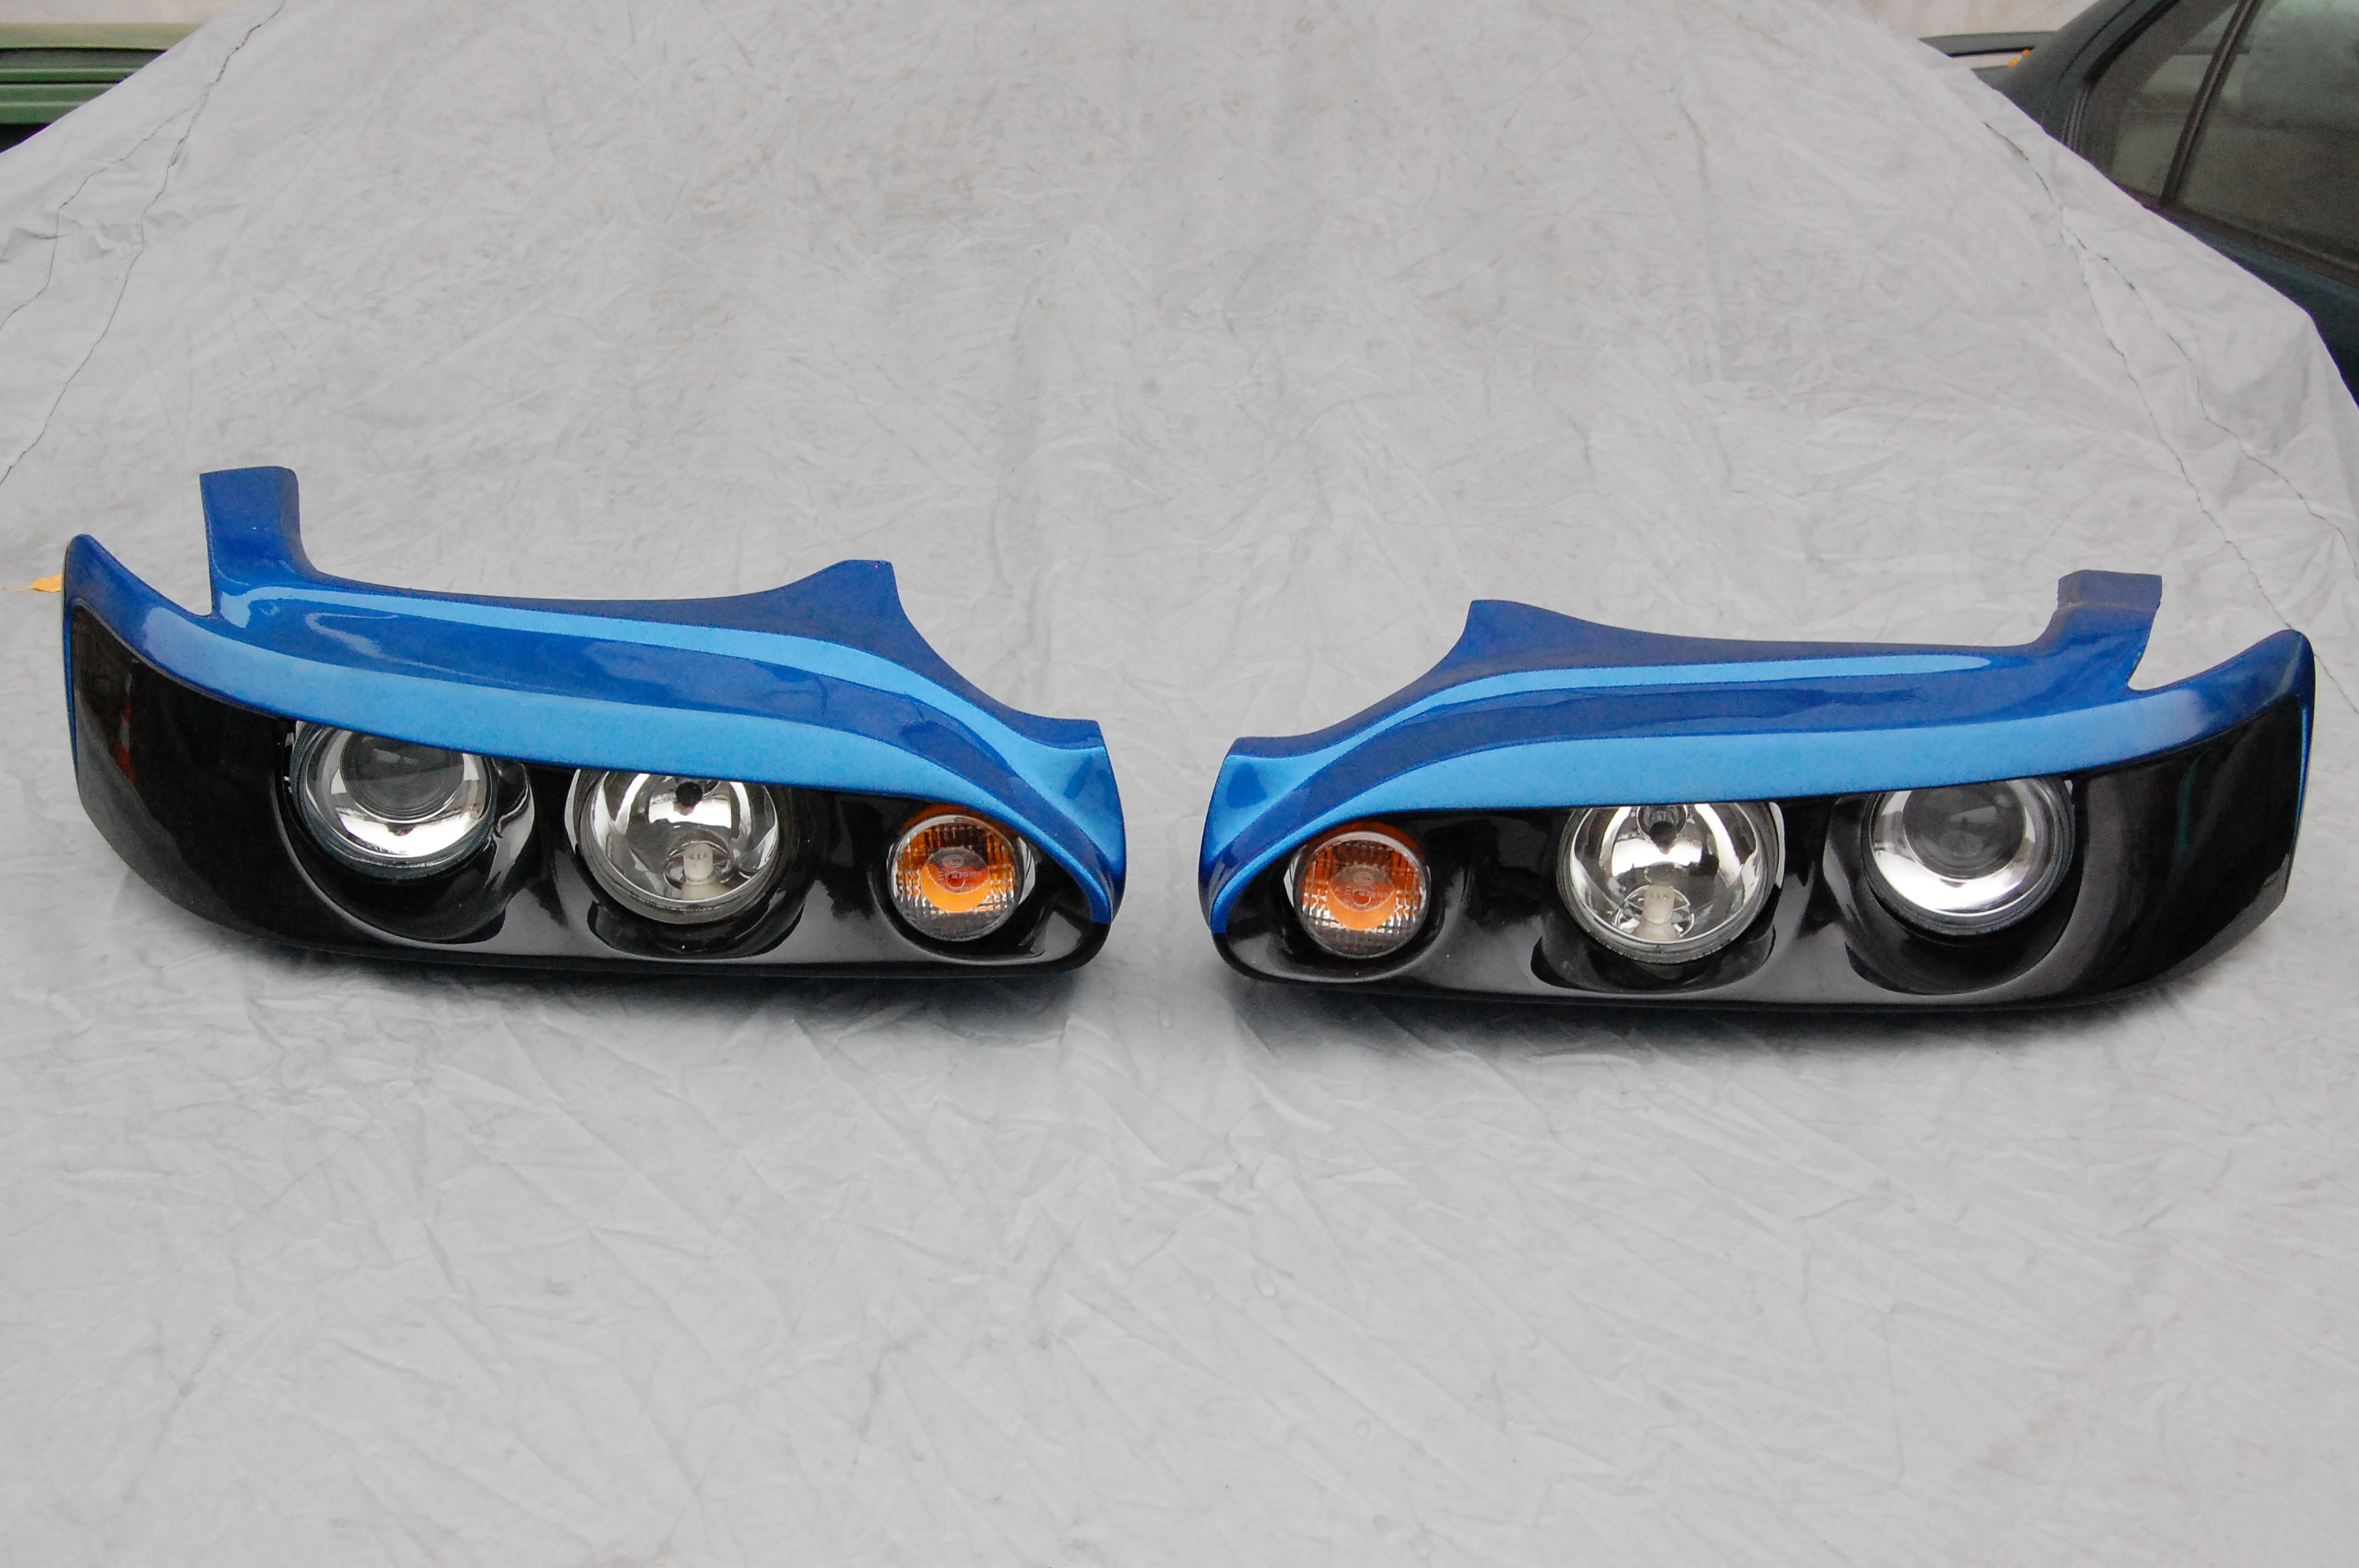 Sport headlights for TOYOTA Levin/Trueno AE111 from Carbon Fiber